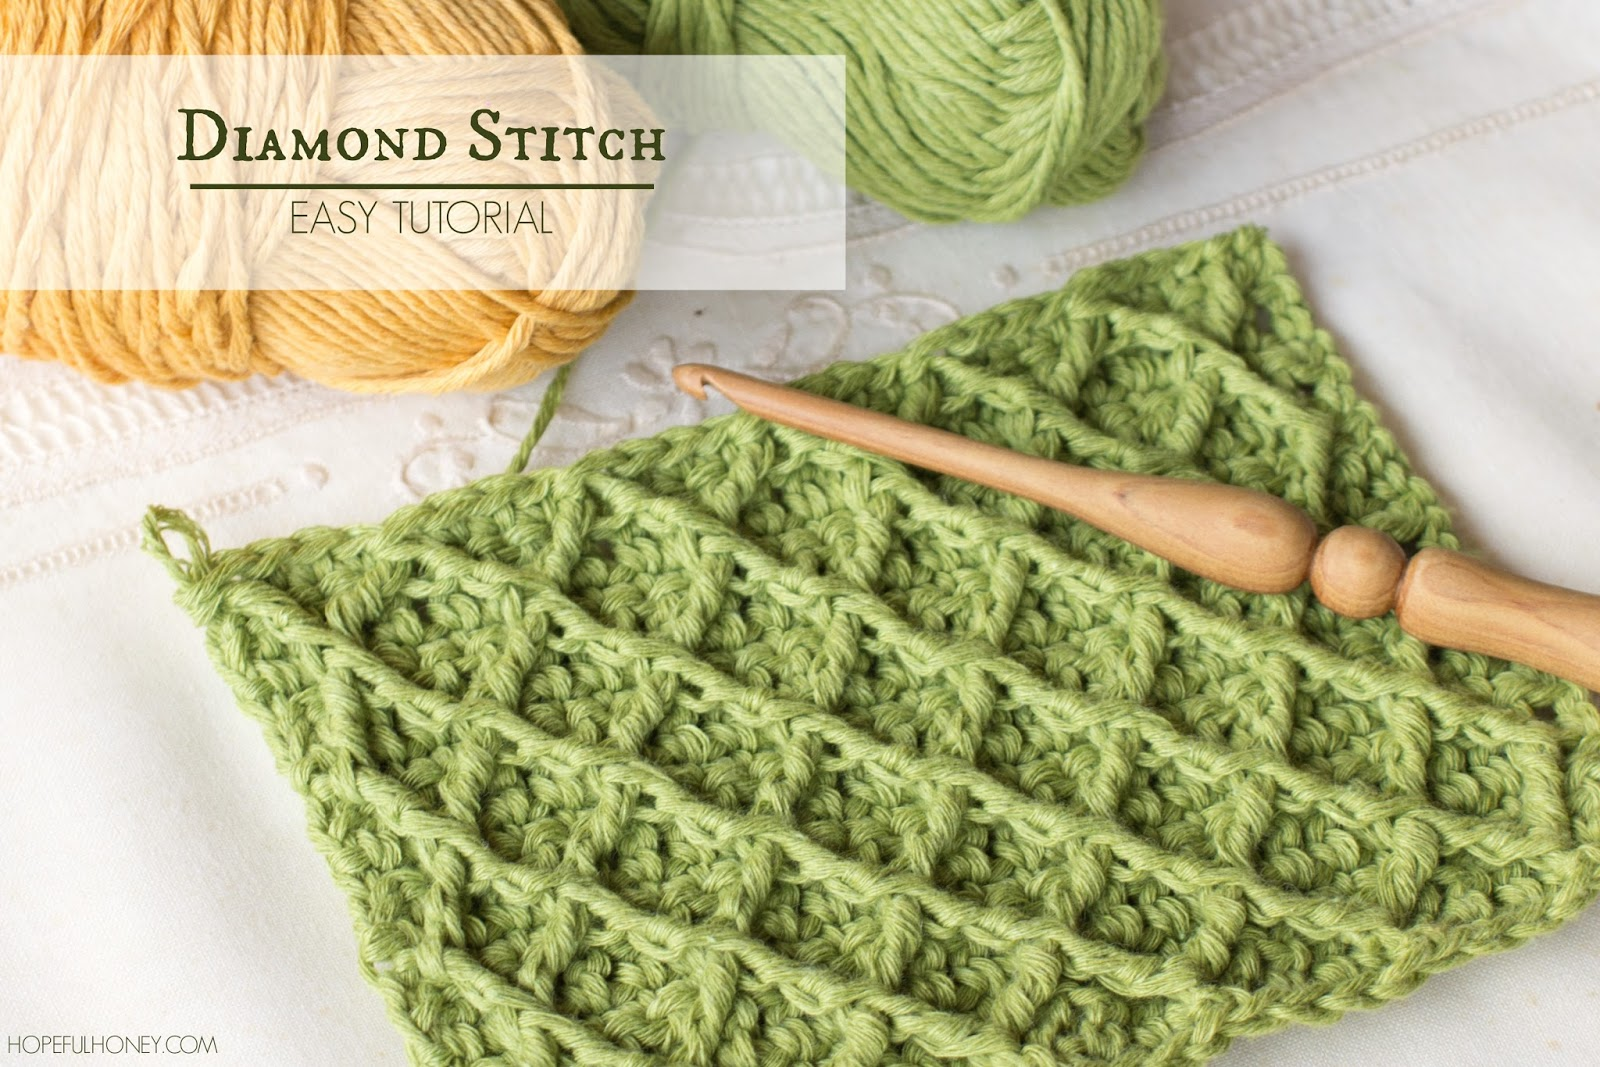 Crochet Stitches On Video : ... , Crochet, Create: How To: Crochet The Diamond Stitch - Easy Tutorial